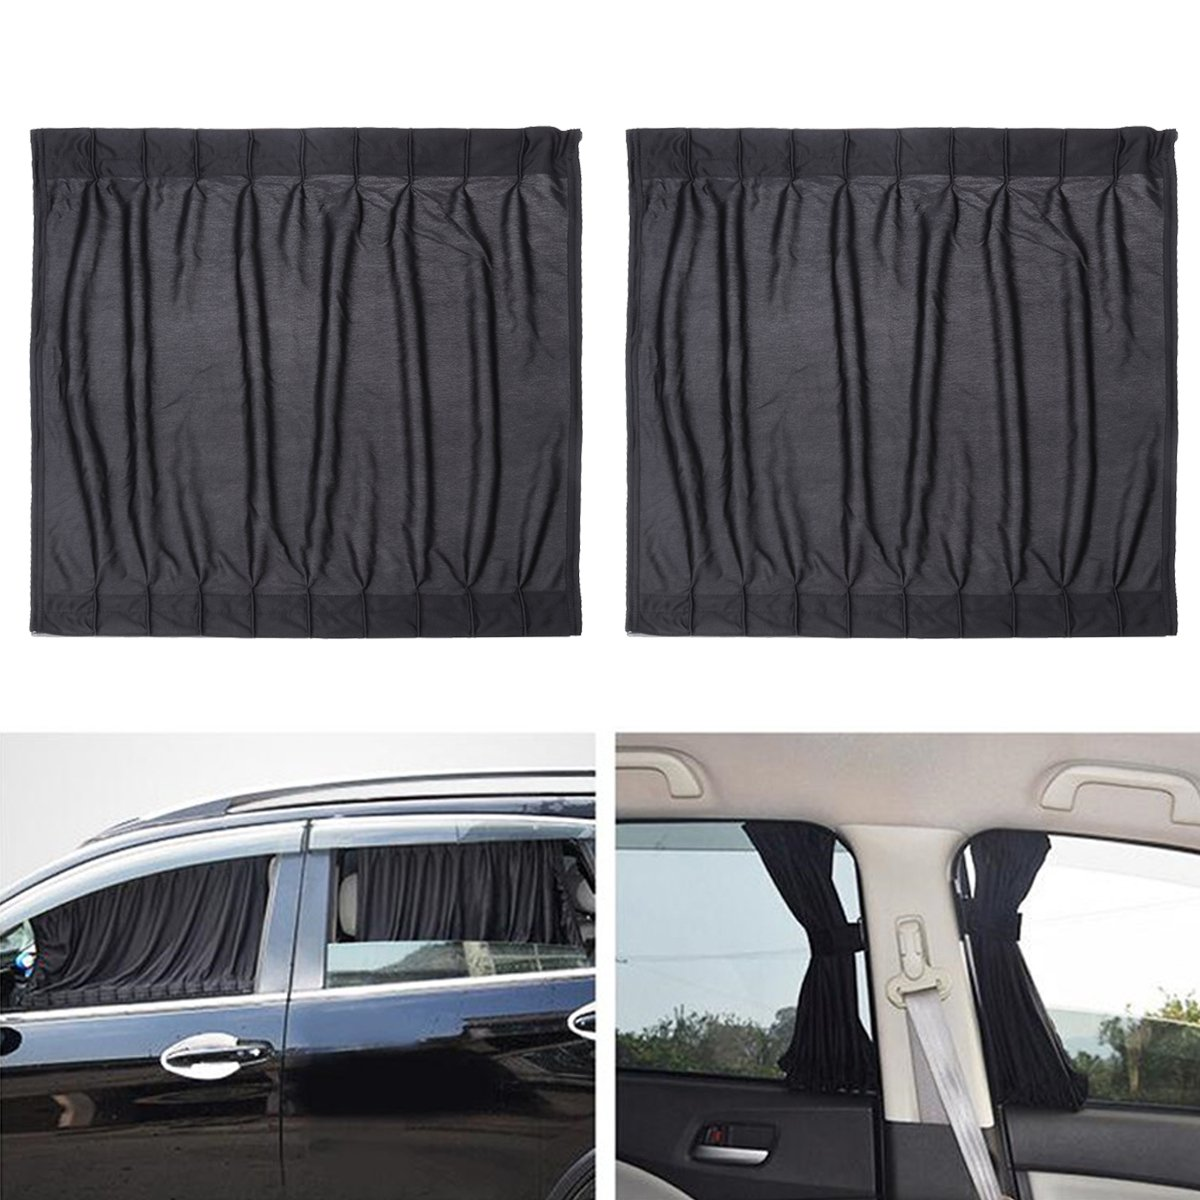 VORCOOL Car Side Window UV Protection Curtain Car Slidable Window Shield 2pcs (Black)